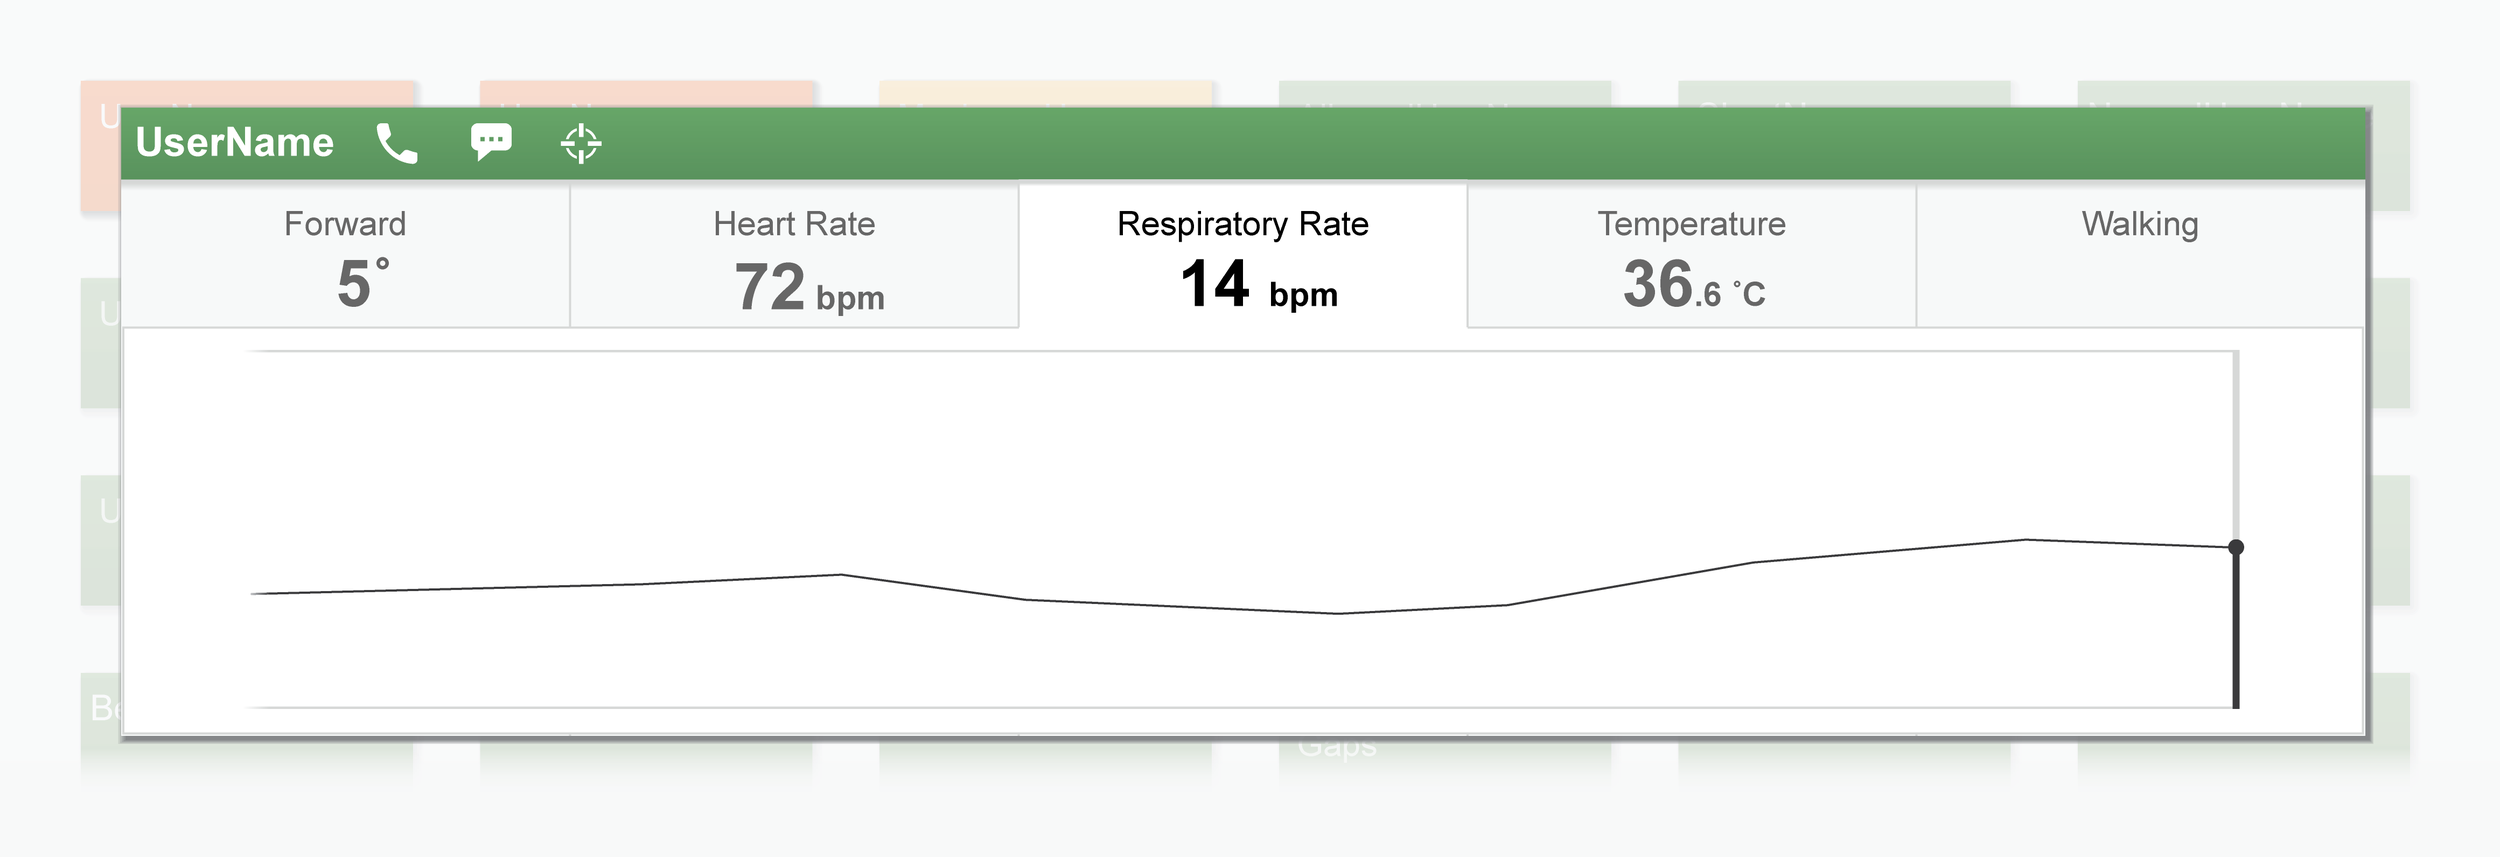 prg.dashboard.normalstate.drilldown.png